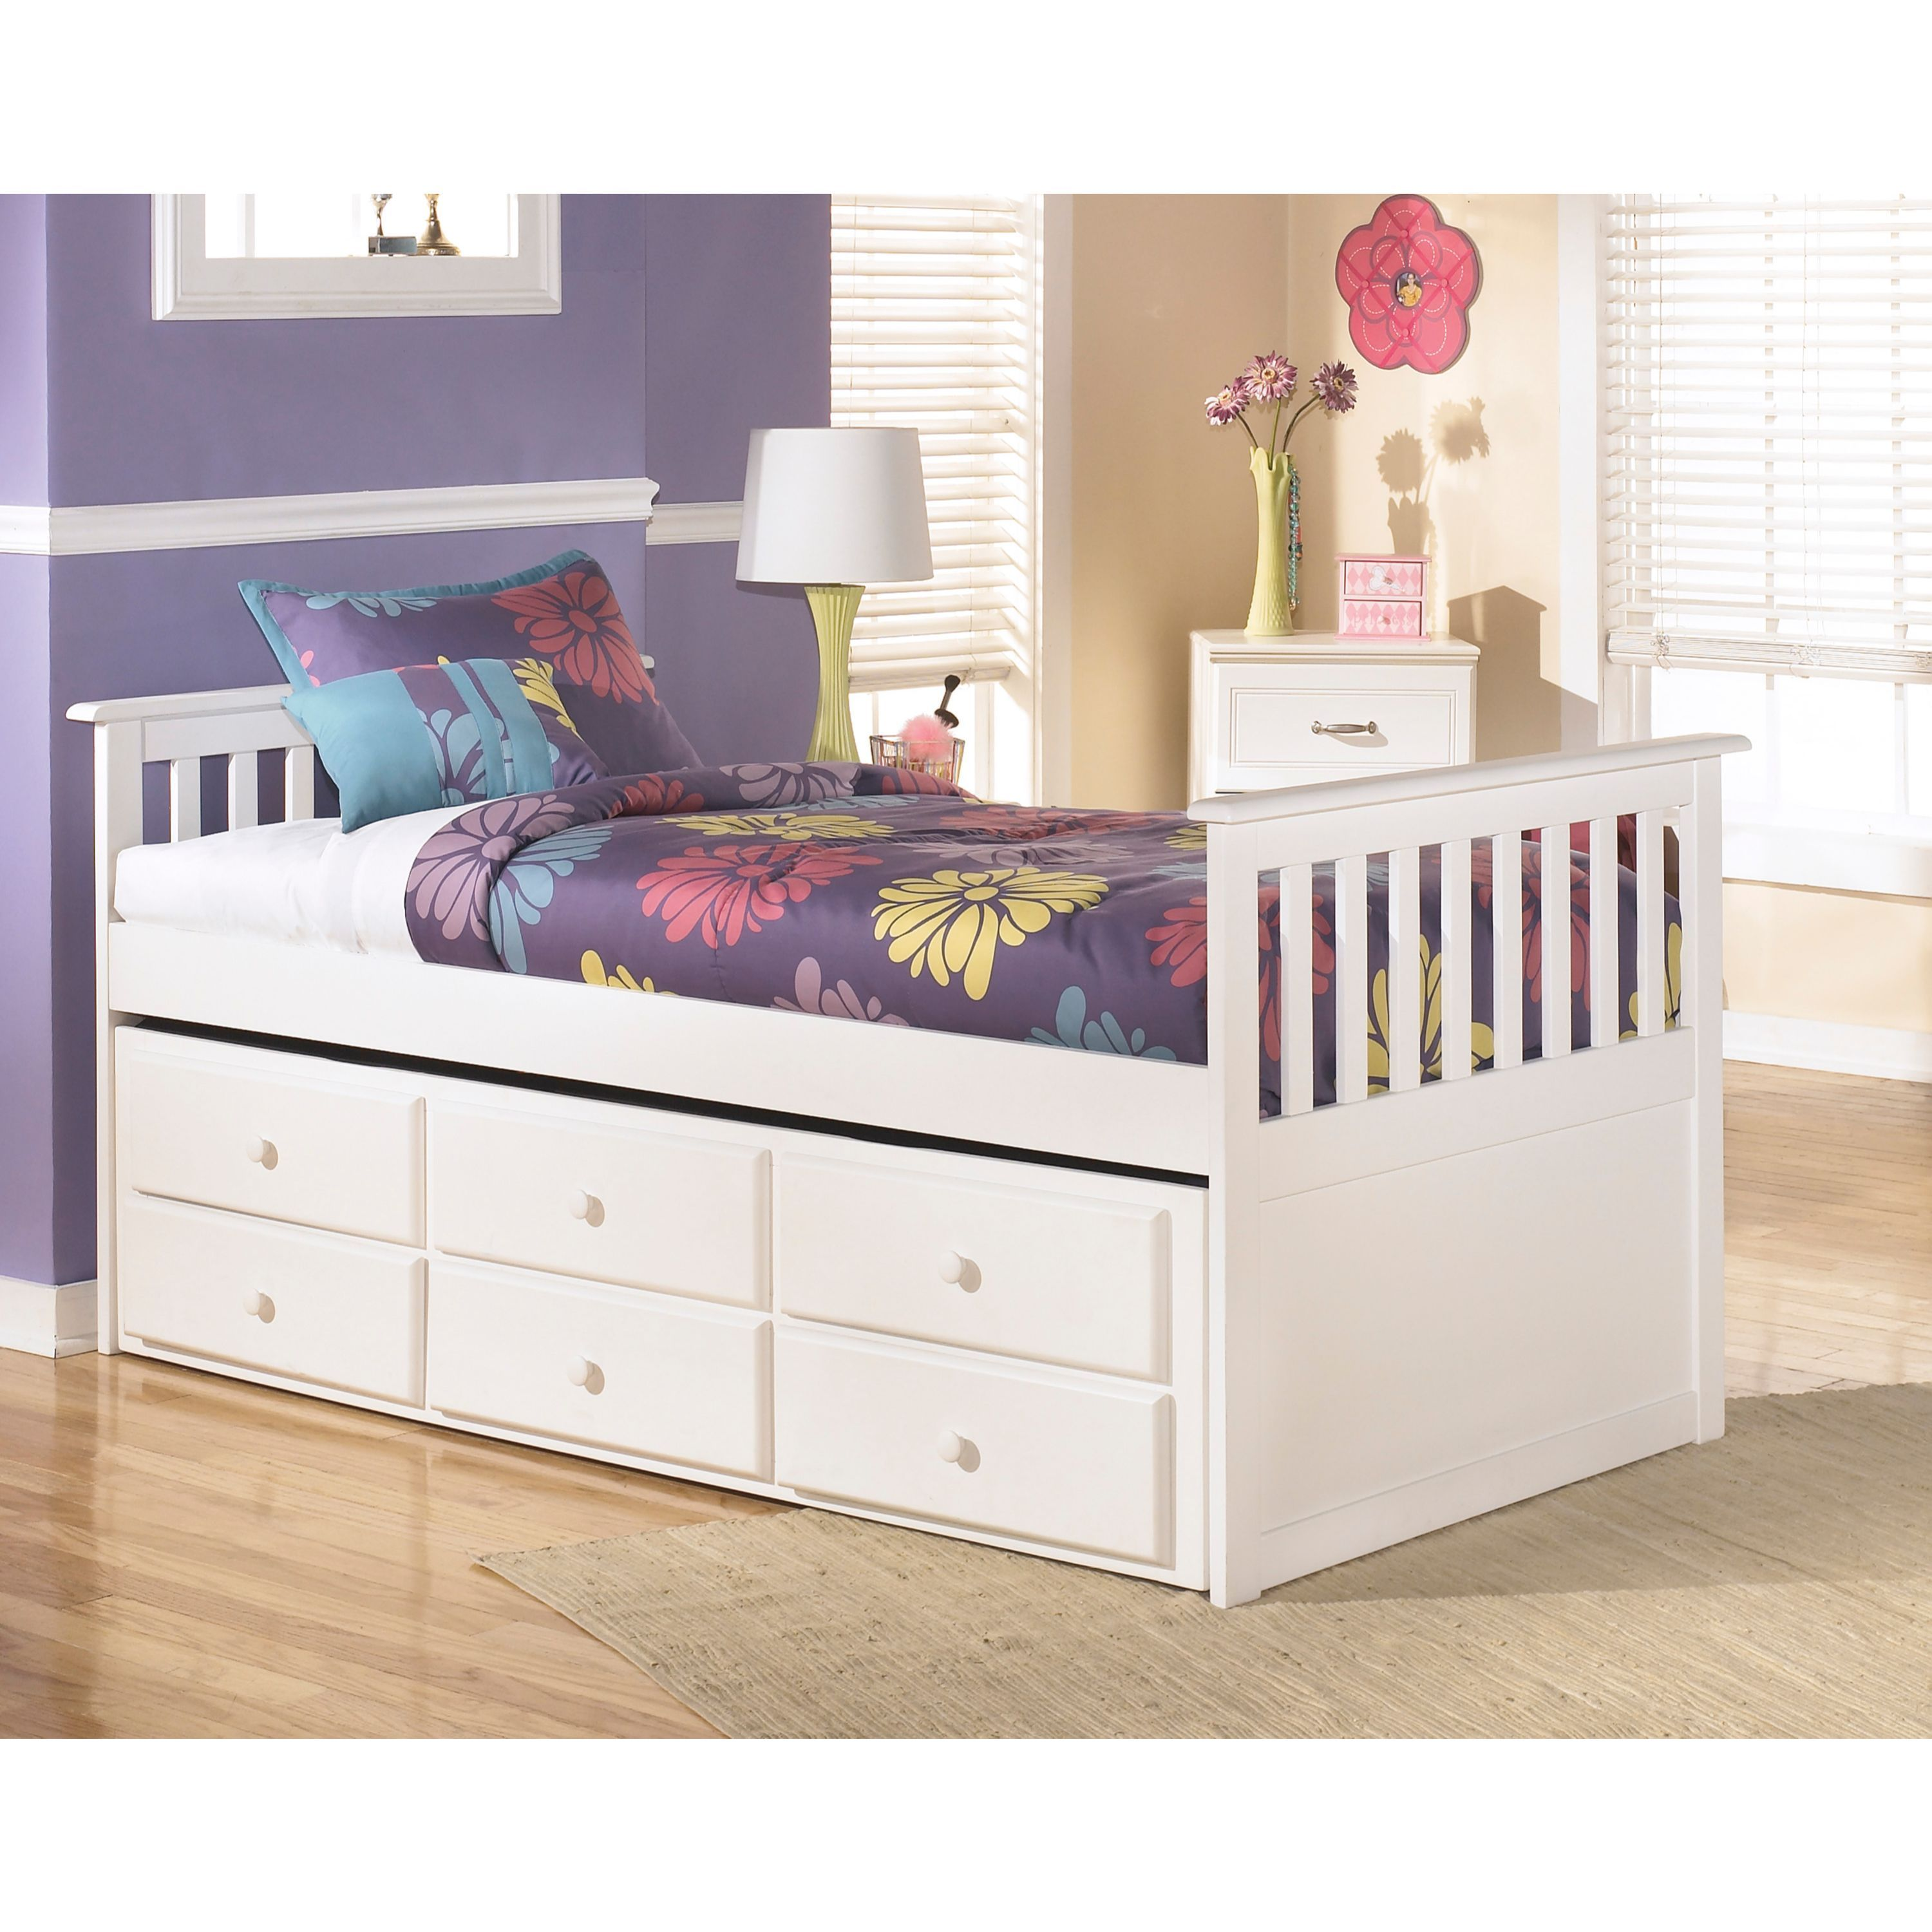 painted pin child s design finish bed sleeping bedroom in twin white its two trundle your this sleigh with create featuring a beautifully drawers space works for